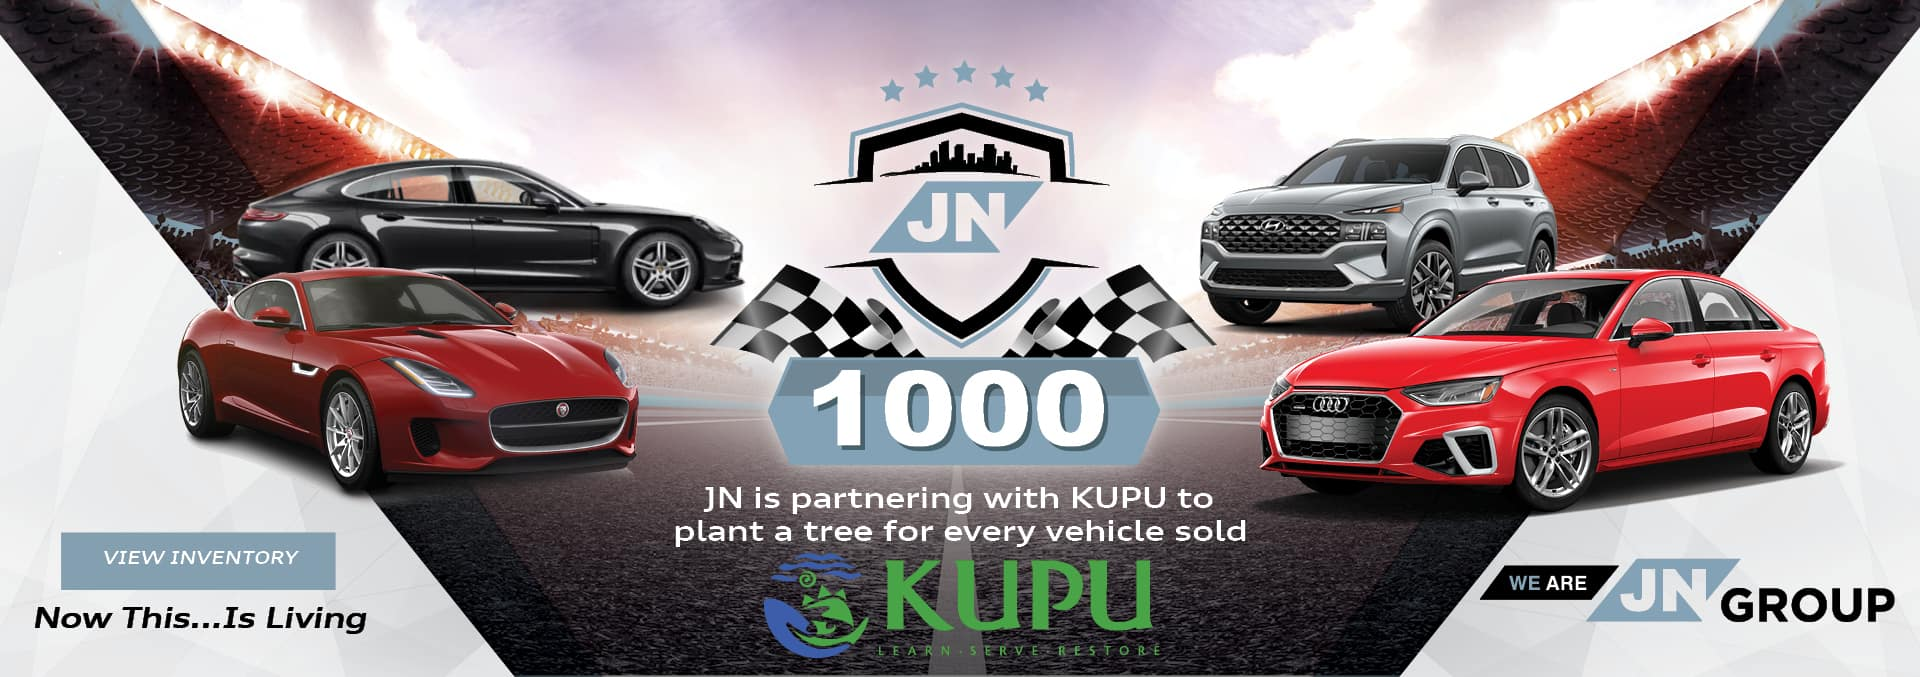 JNGroup_Race1000Assets_Feb21_19250